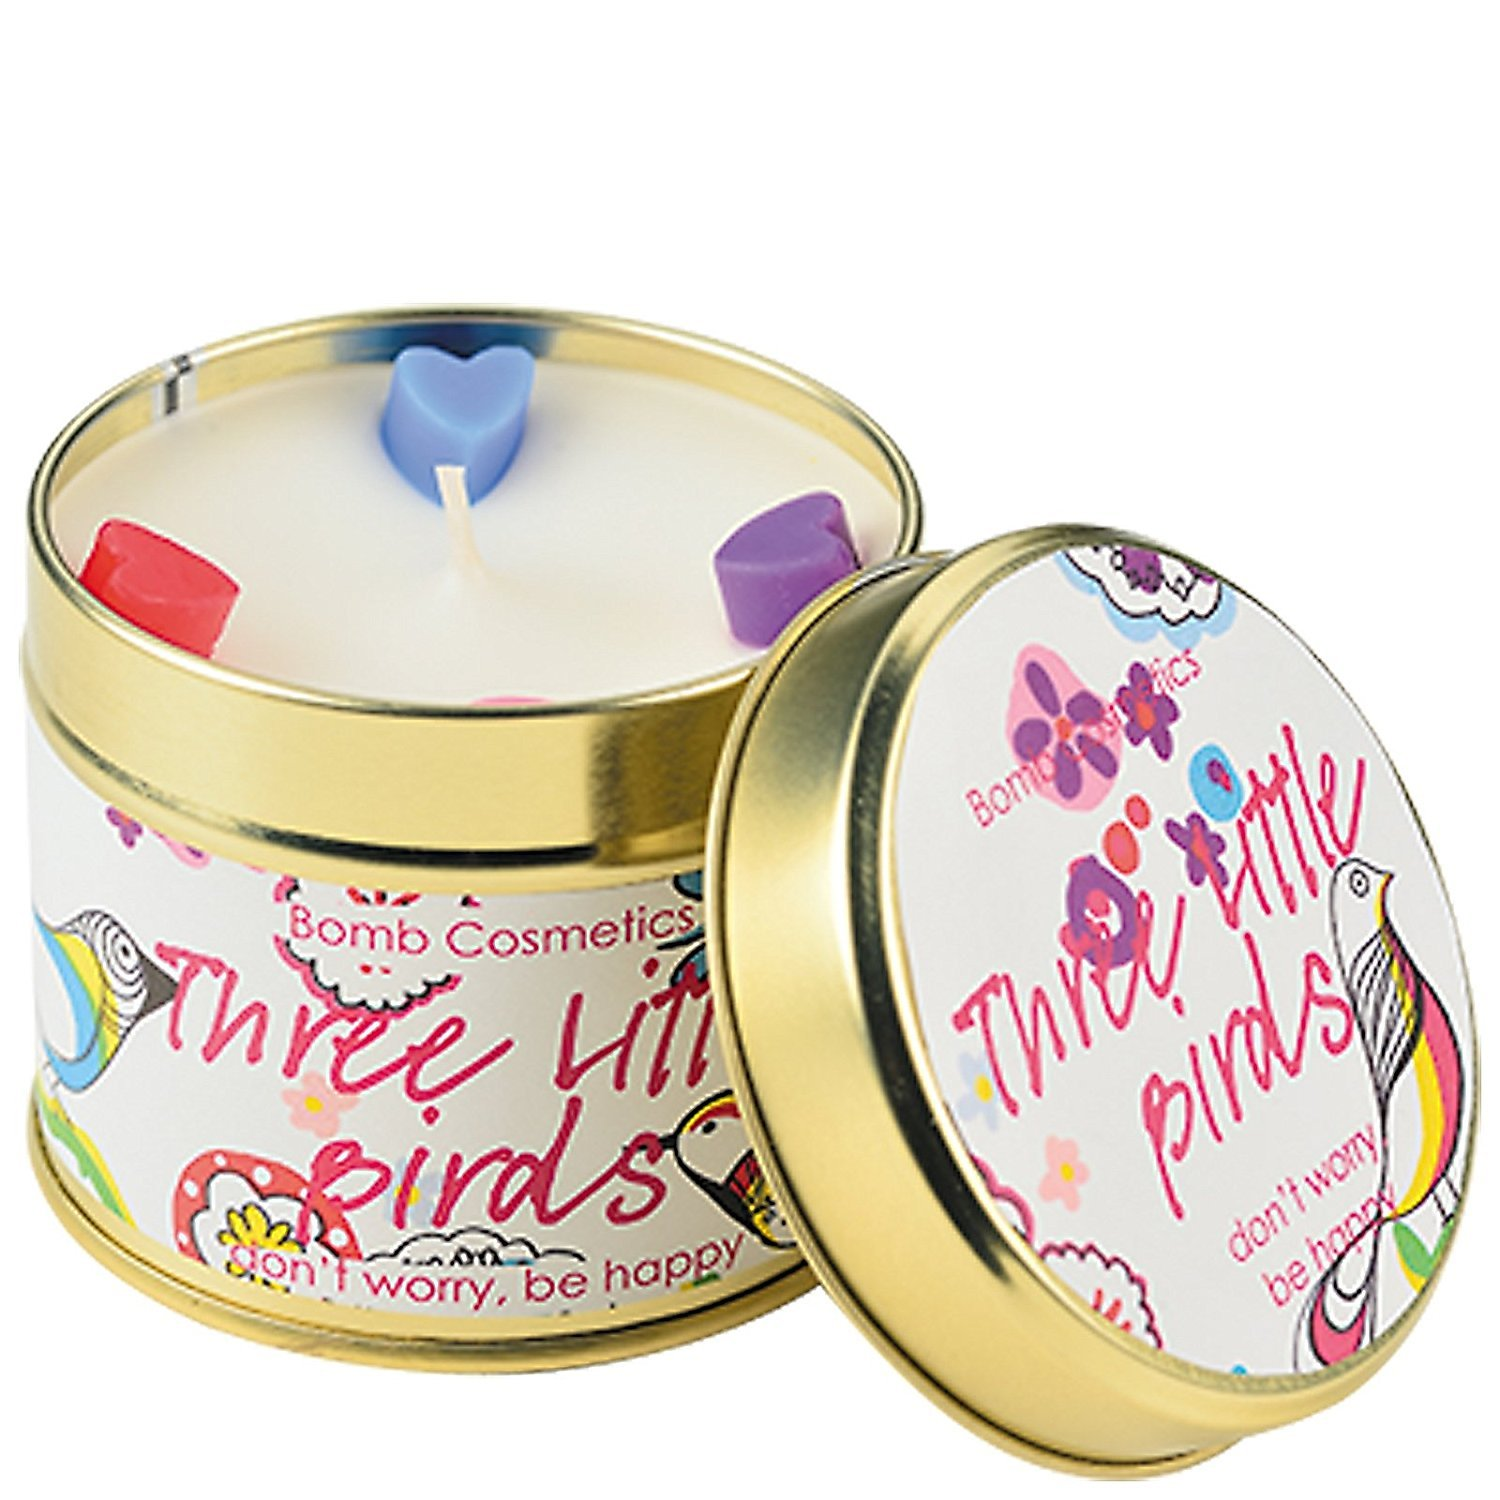 Bomb Cosmetics Three Little Birds Tin Candle